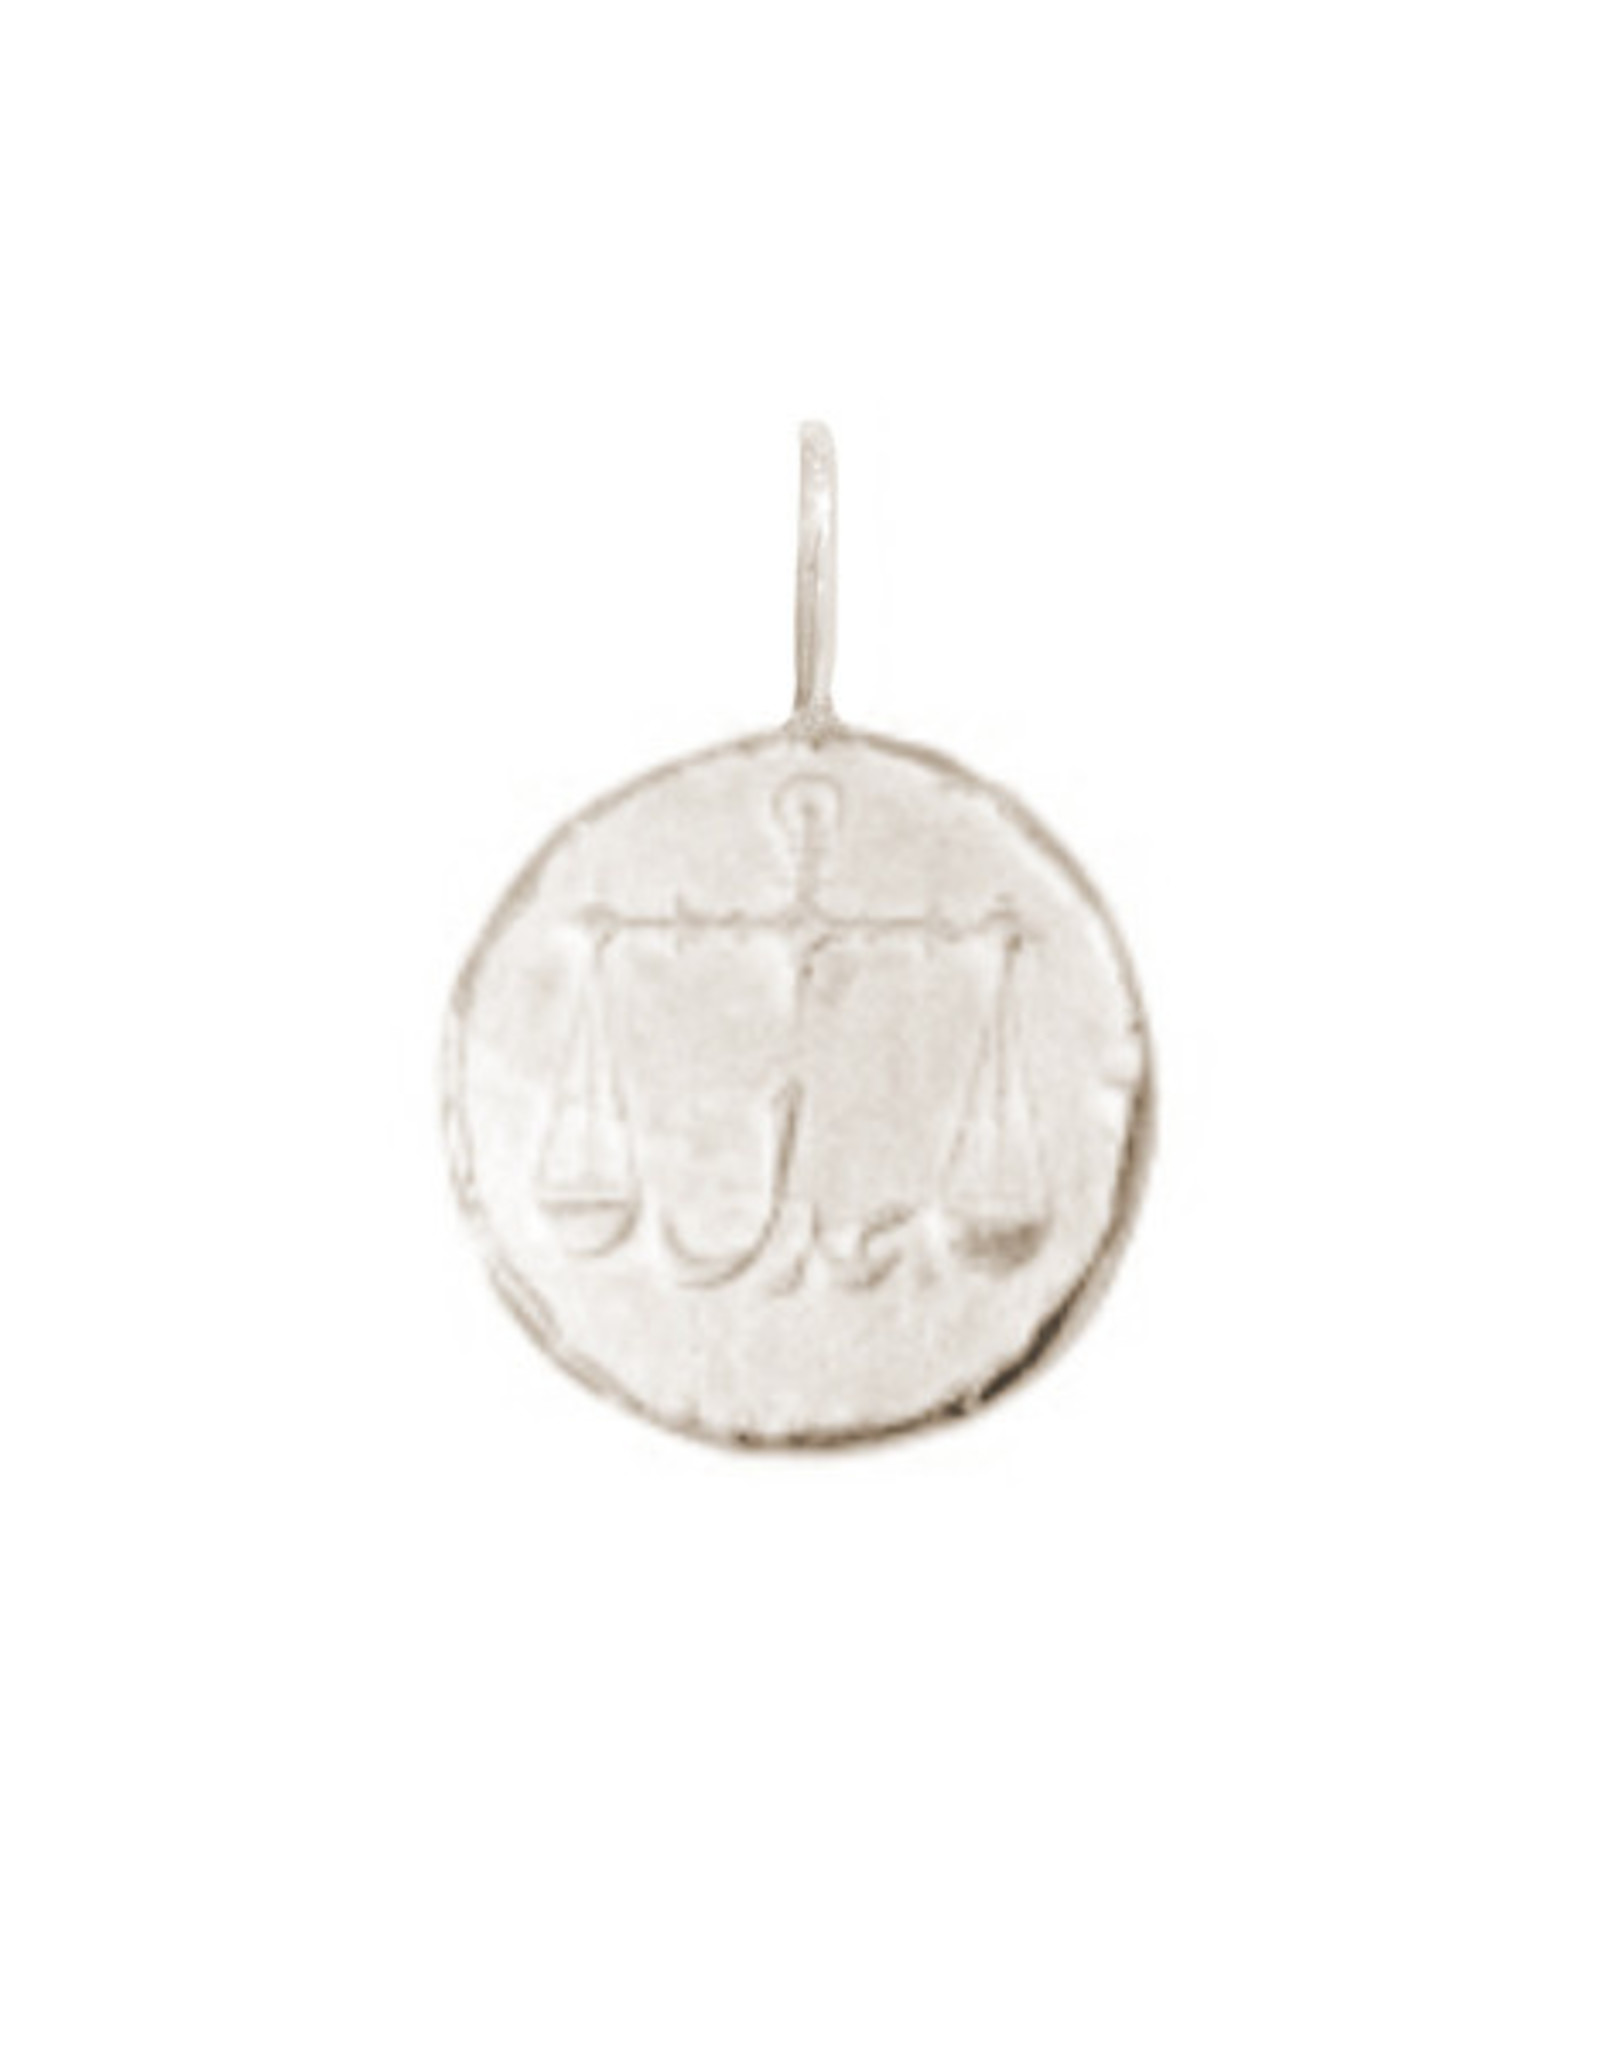 Robin Haley Jewelry The Scale (Honesty) Artifact Necklace